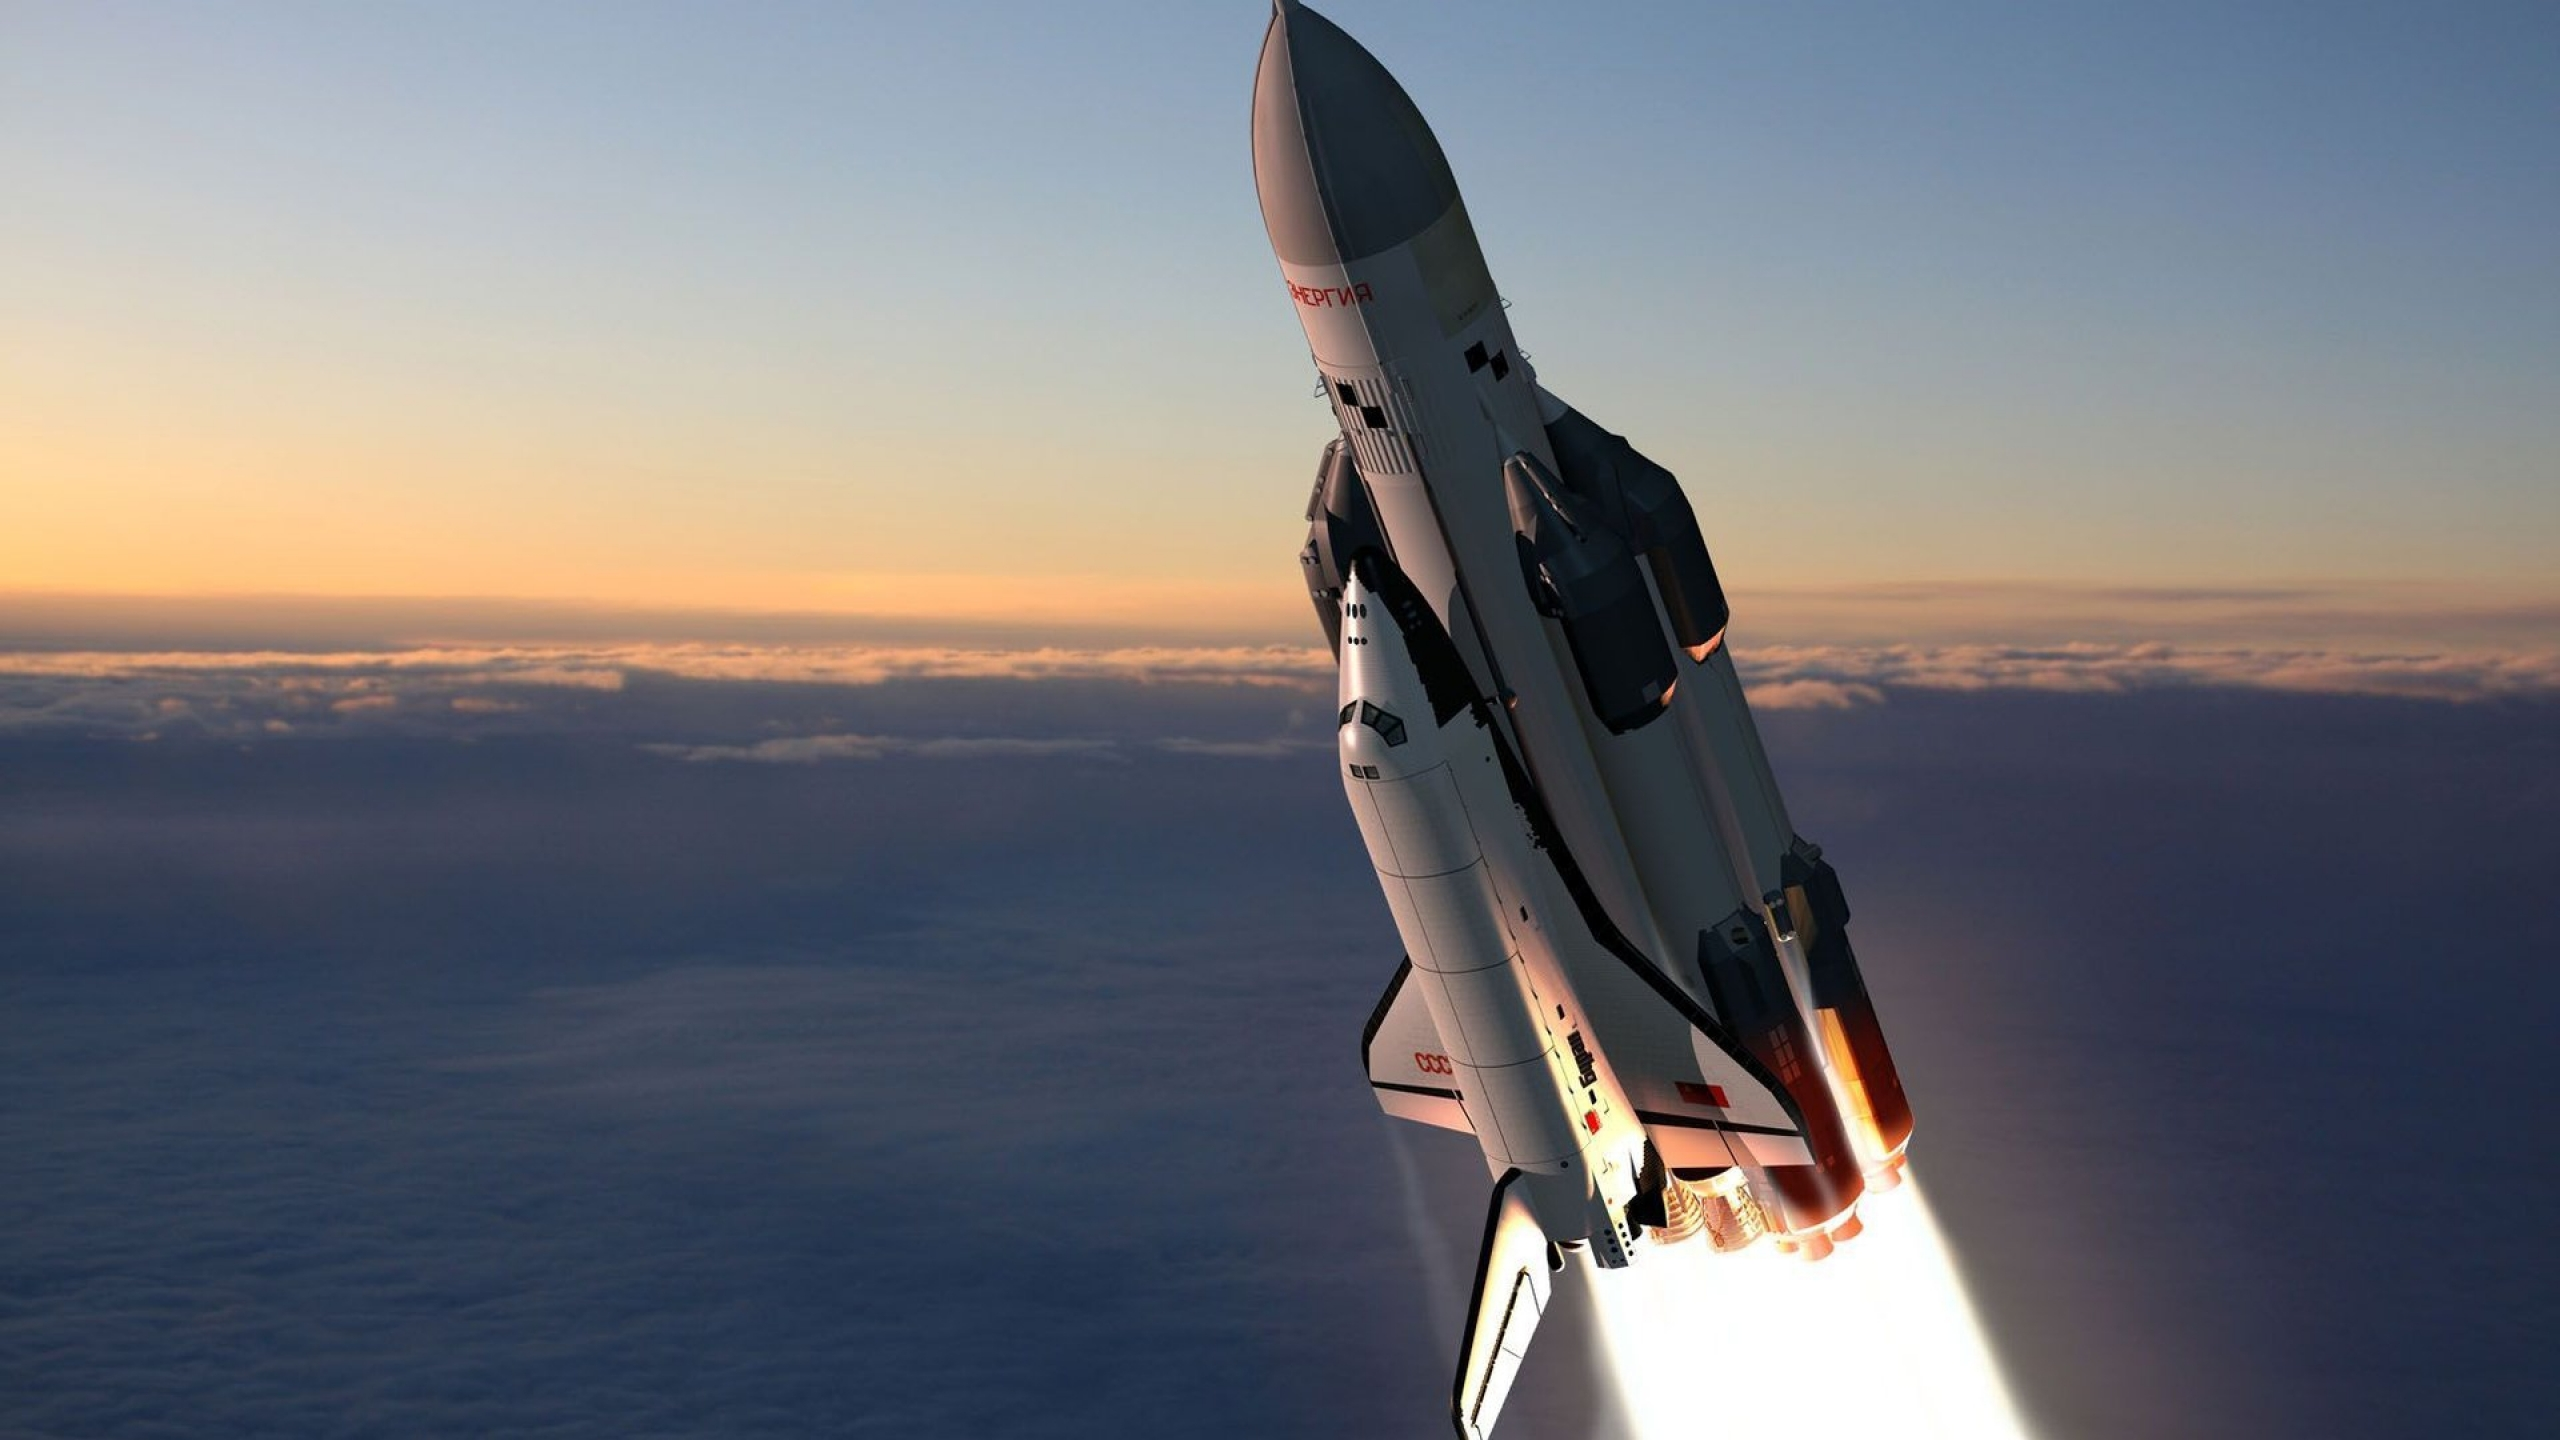 Wallpapers Download 2560x1440 flying concept soviet space shuttle 2560x1440